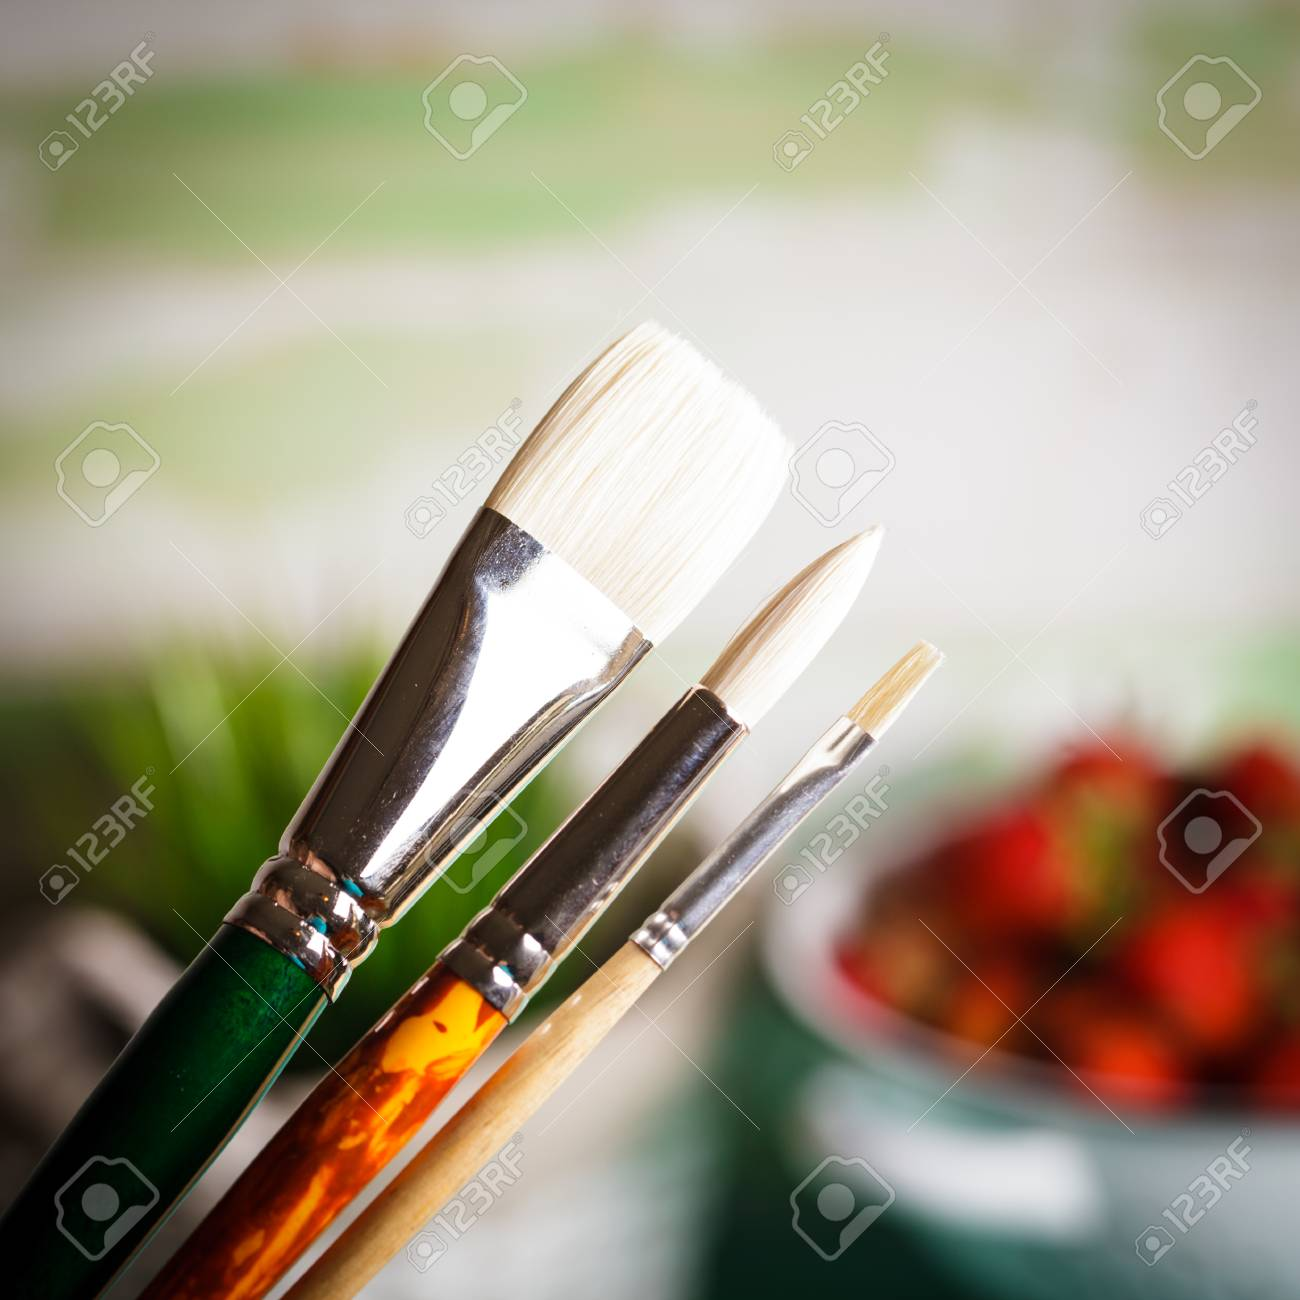 Various Types Of Paint Brushes Over The Defocused Painting Stock